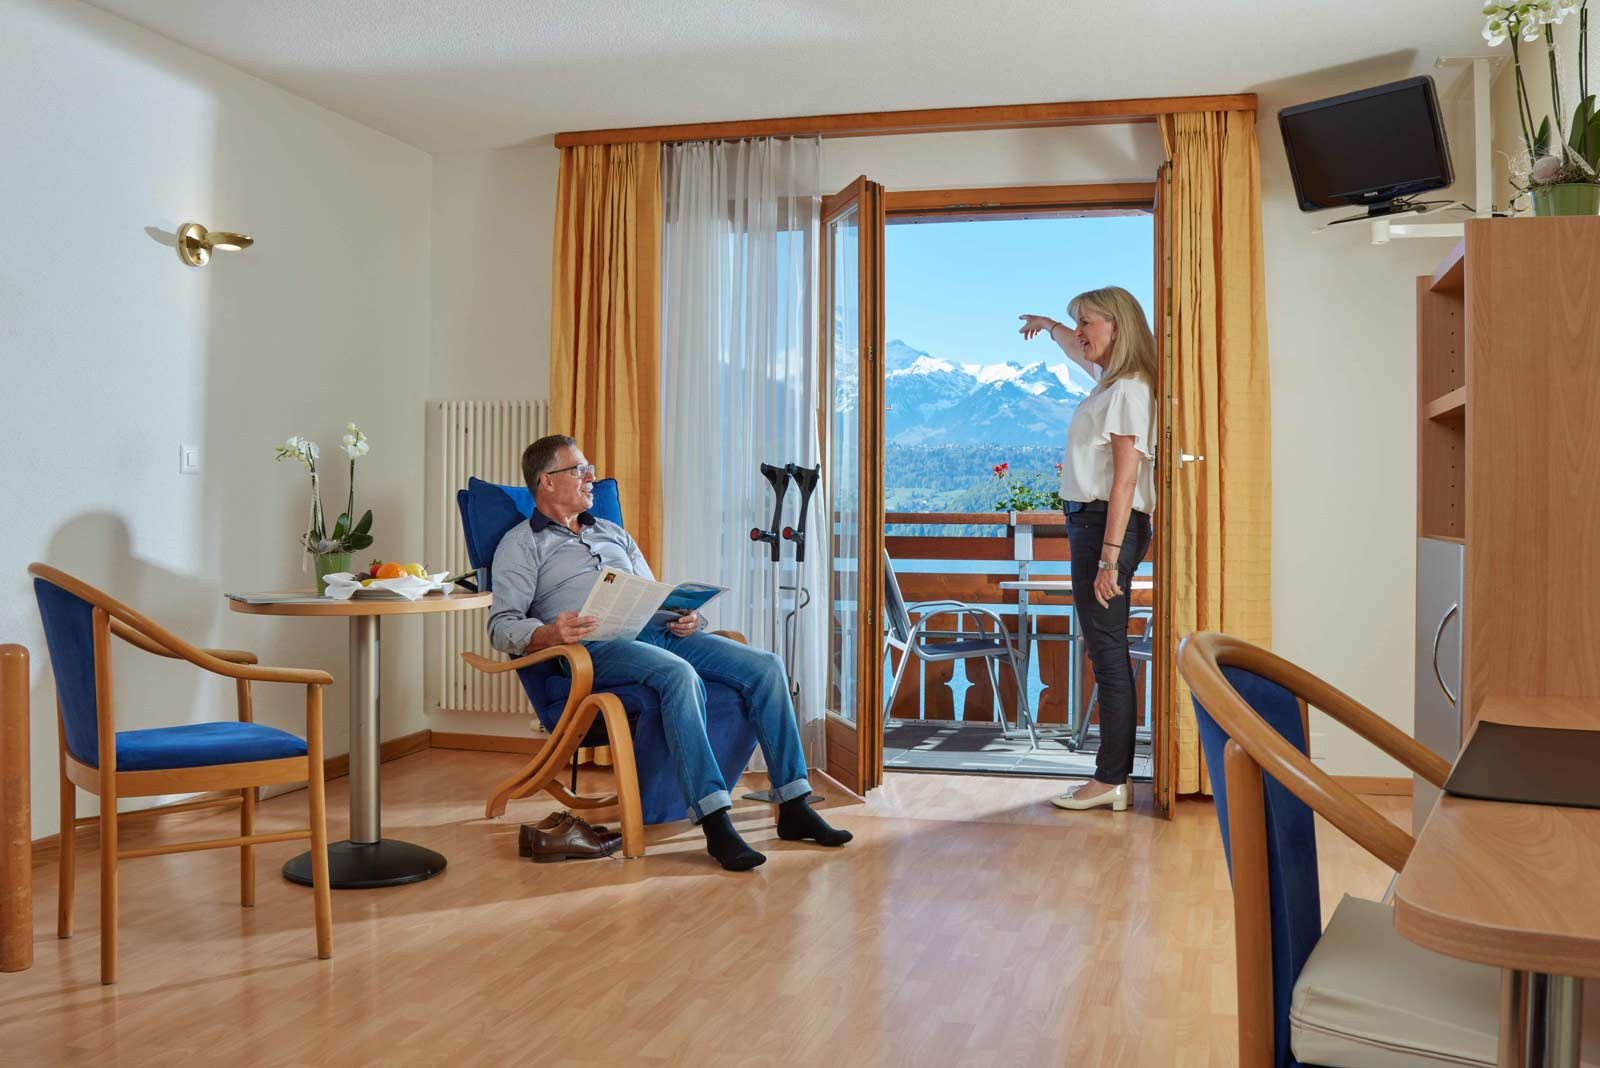 Patients admire the view from their room